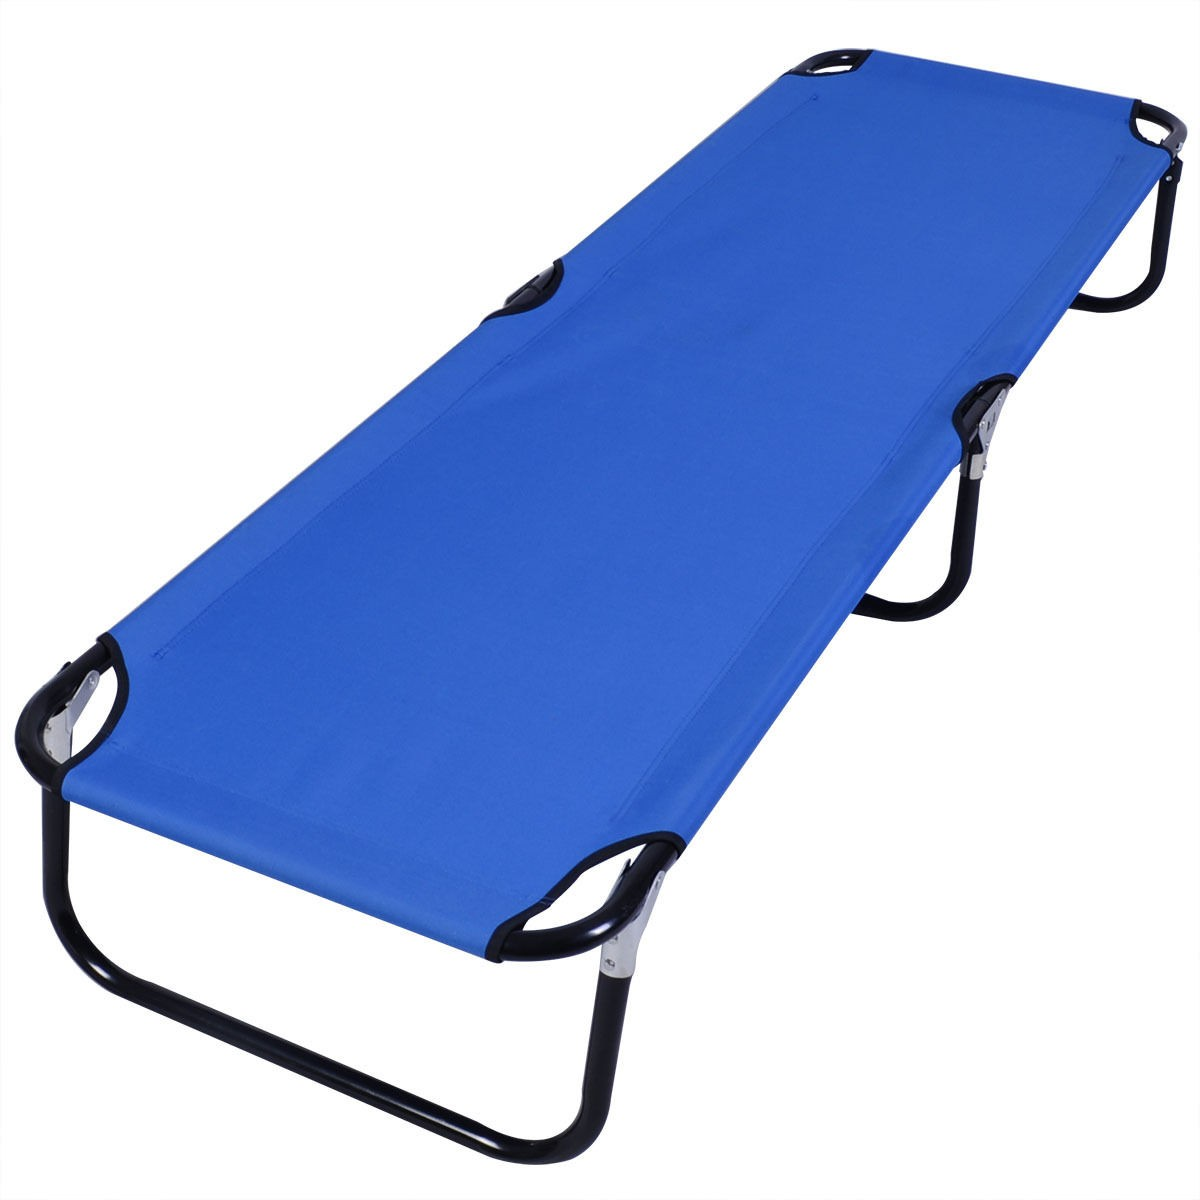 Outdoor Portable Military Folding Camping Bed Cot Sleeping Hiking Travel Blue by Apontus